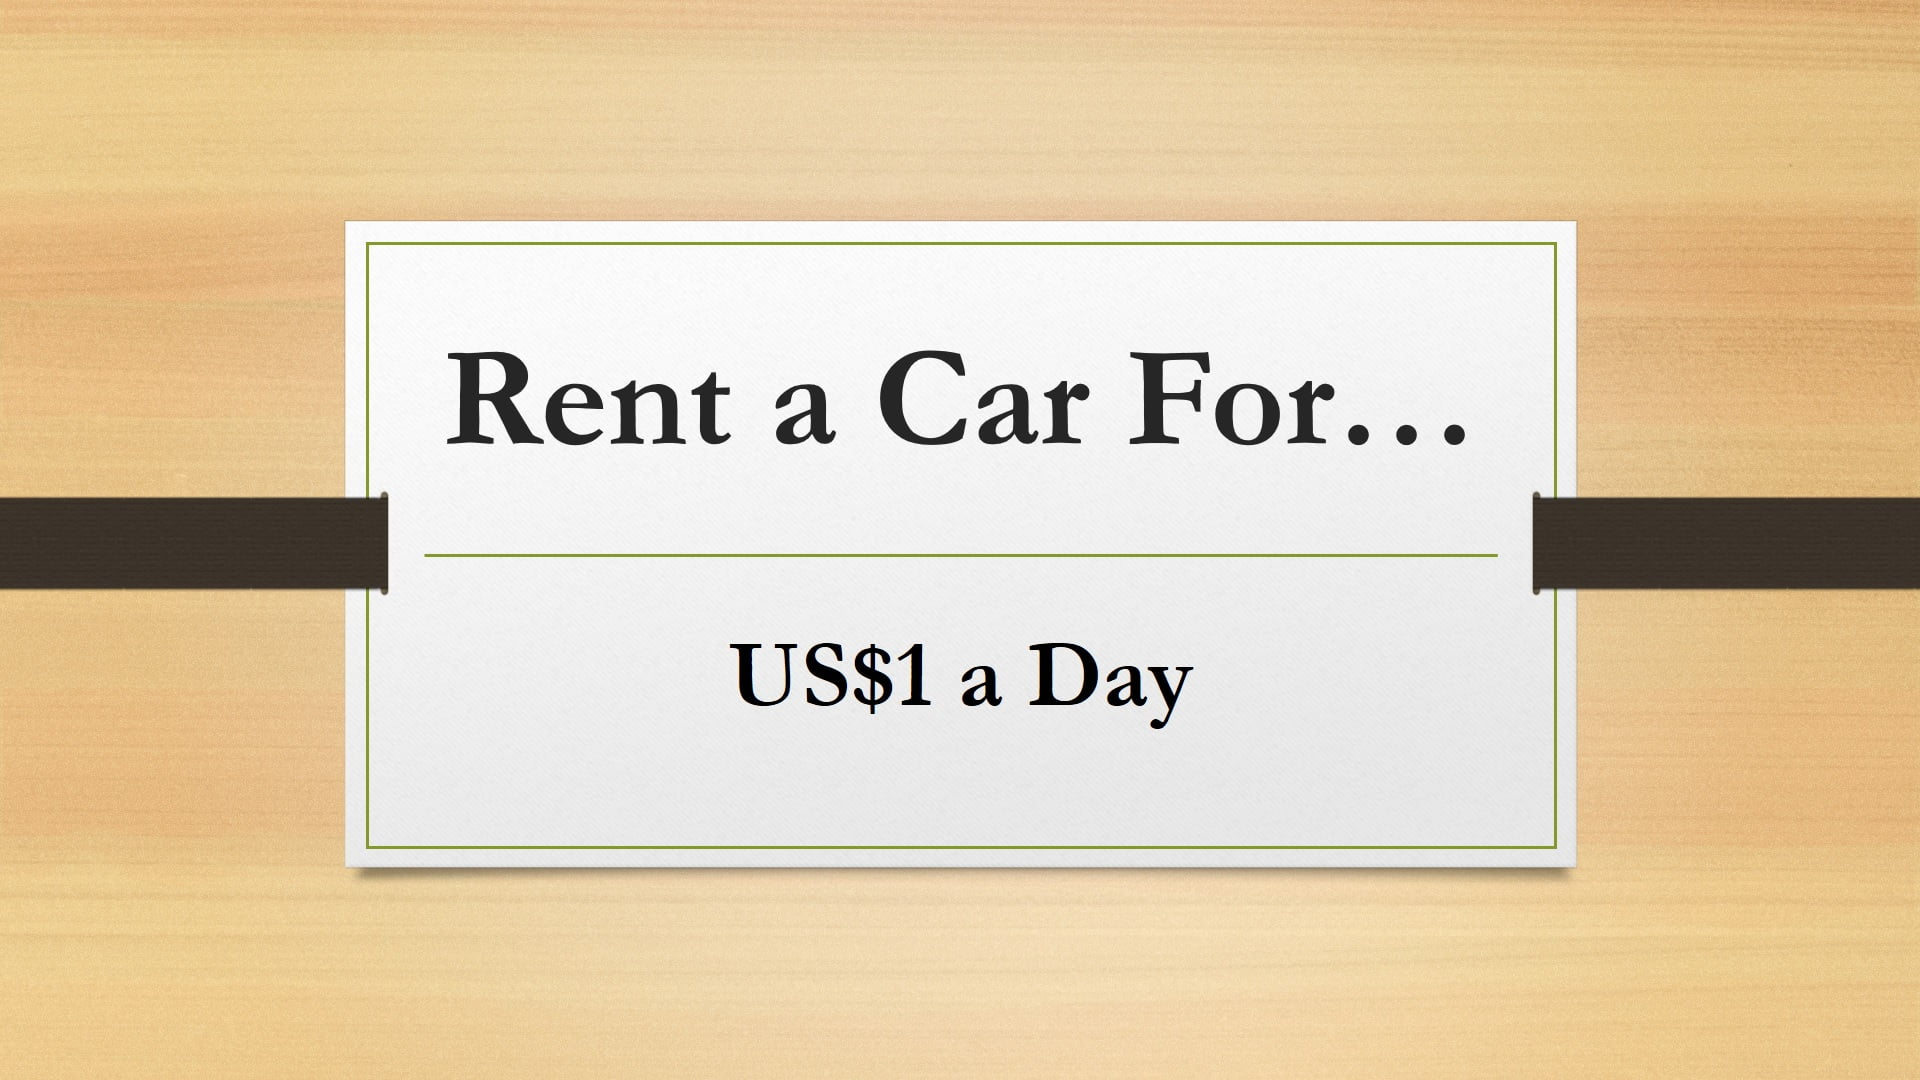 Rent a car for $1 a day